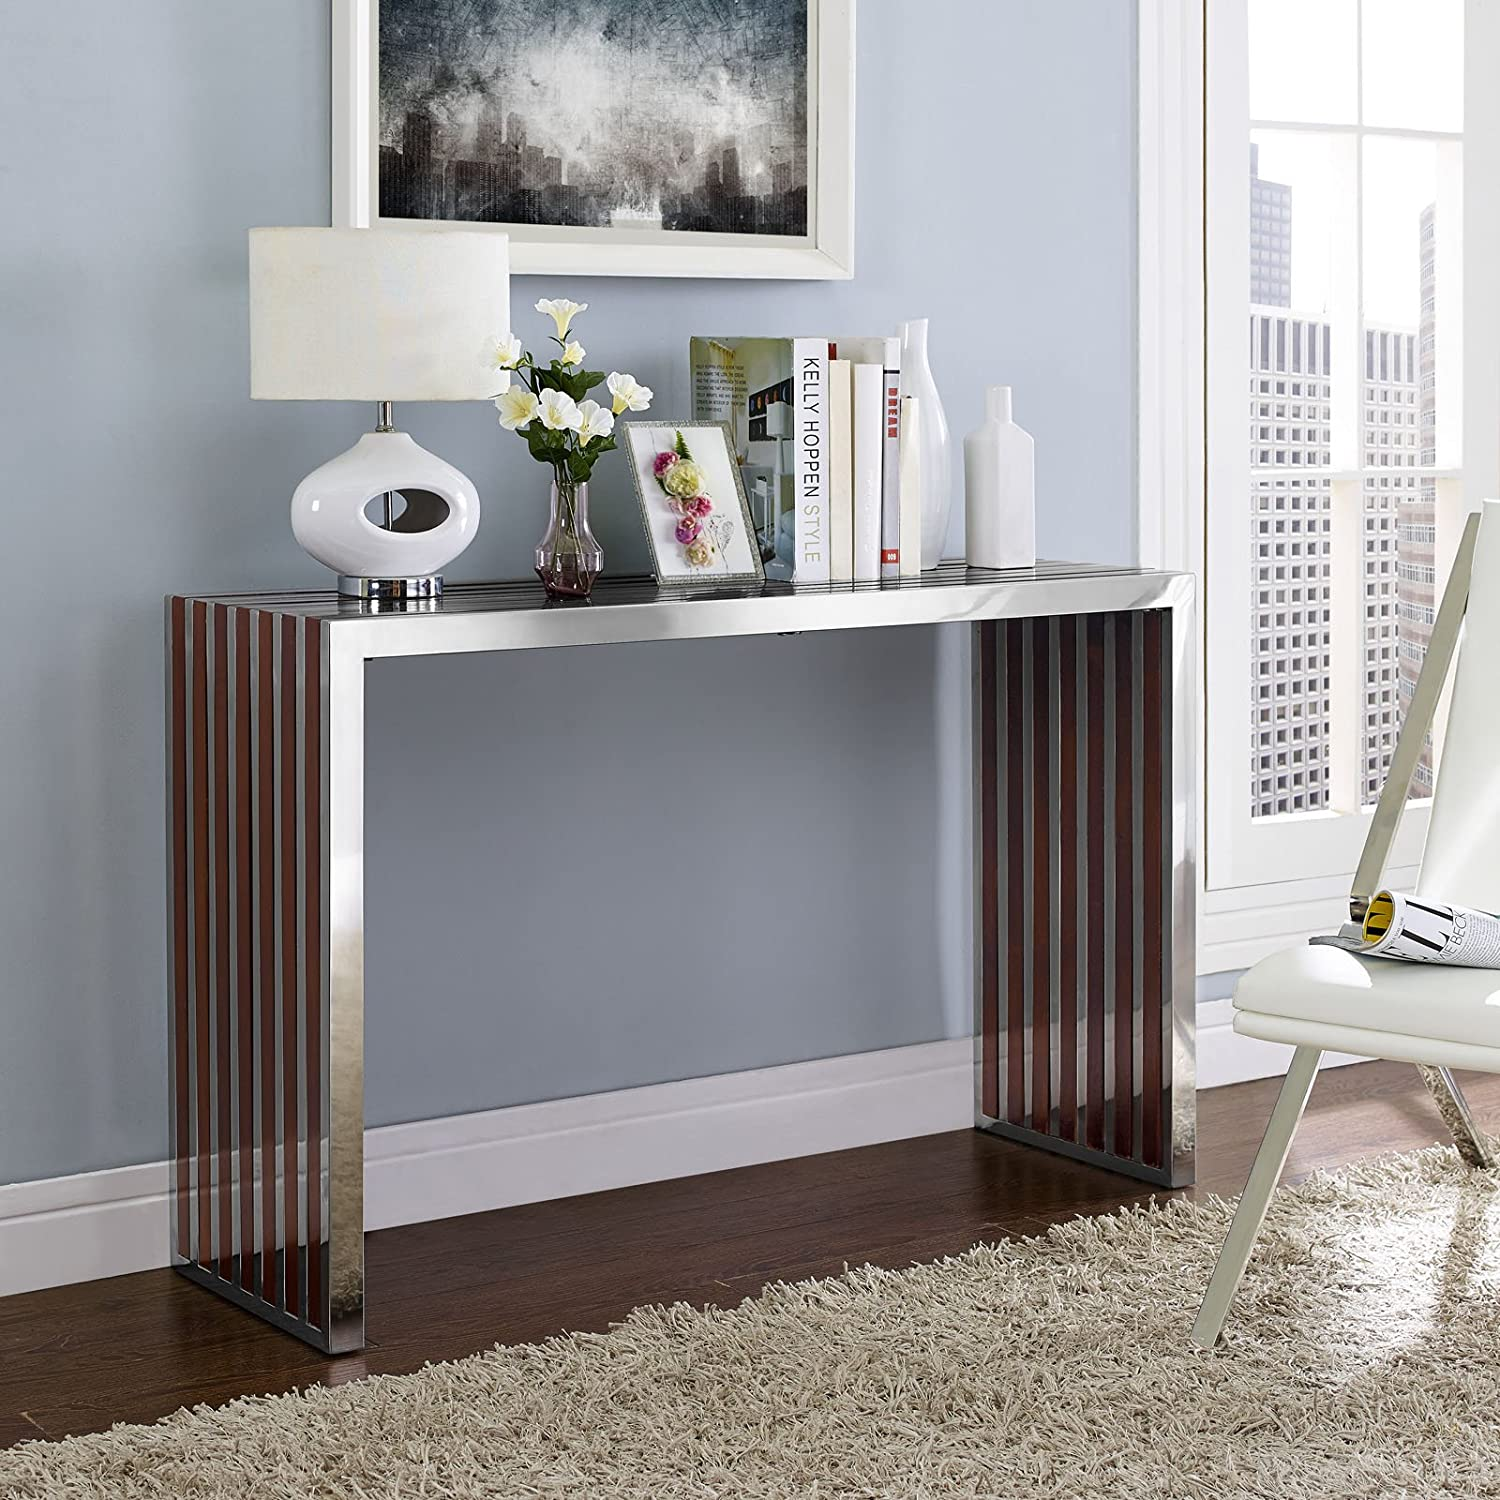 Modway Gridiron Contemporary Modern Stainless Steel Console Table With Wood Inlay